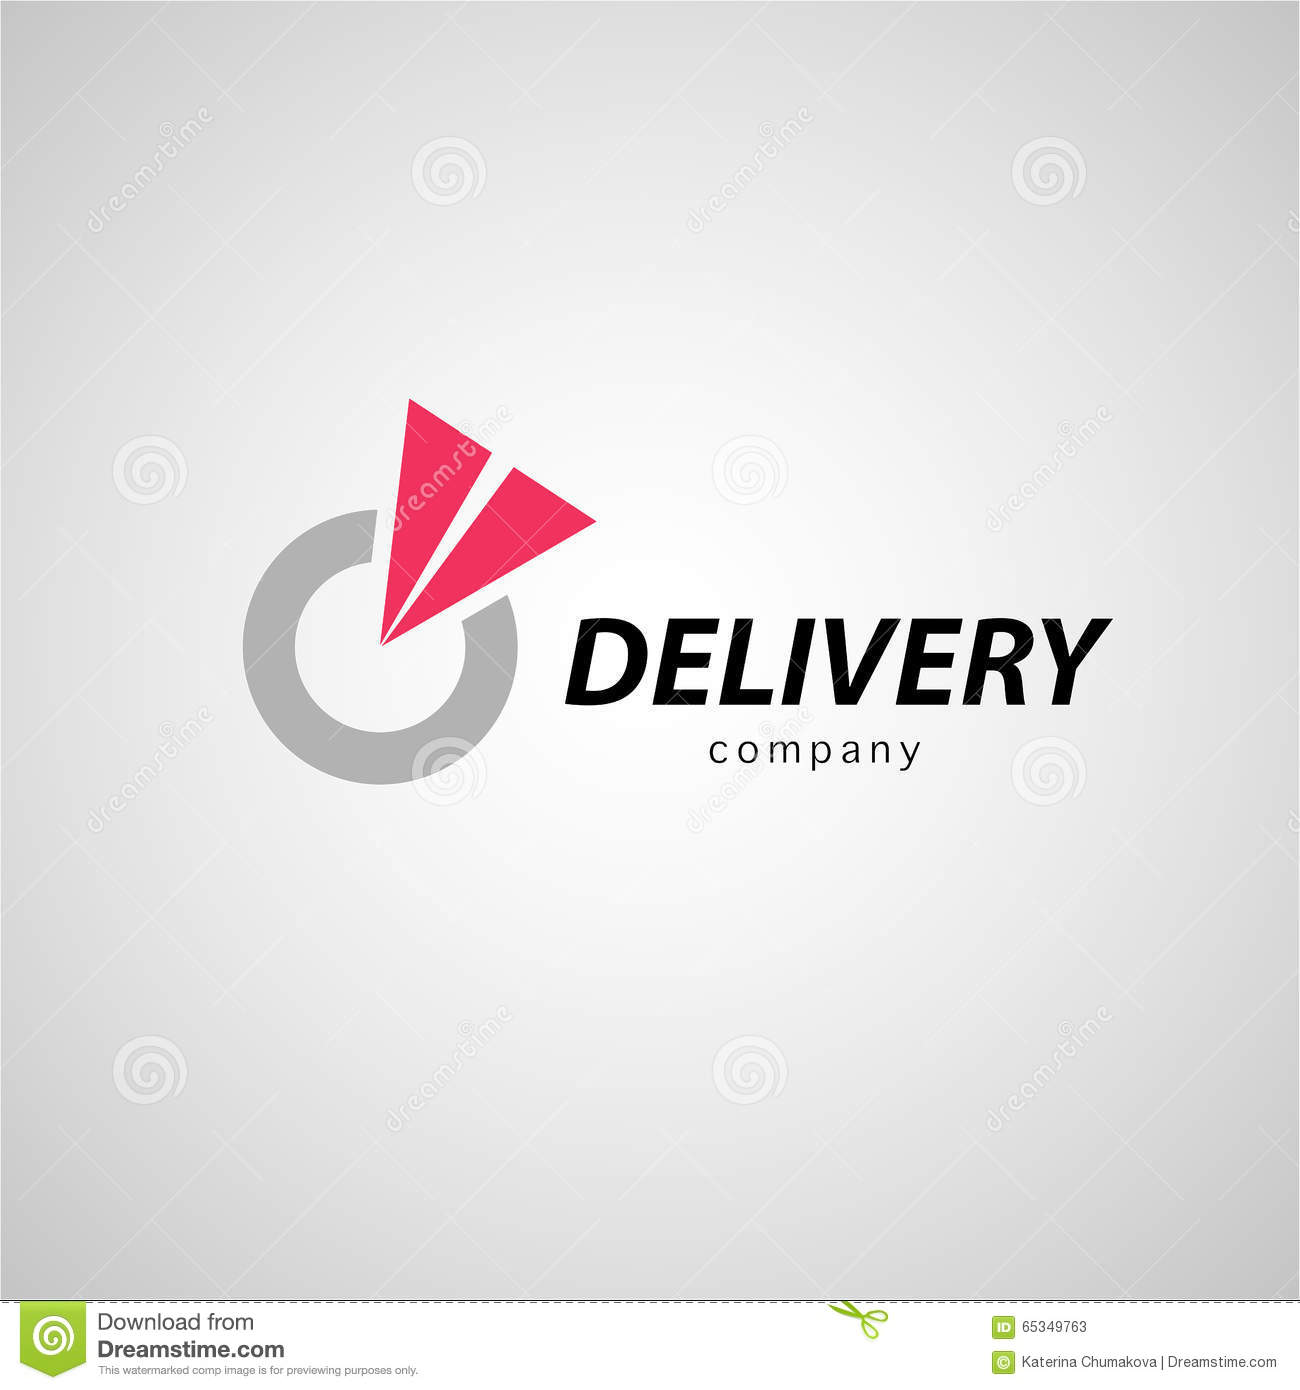 Shipping Delivery: Logistics Icon, Fast Truck Delivery Logo Concept Cartoon